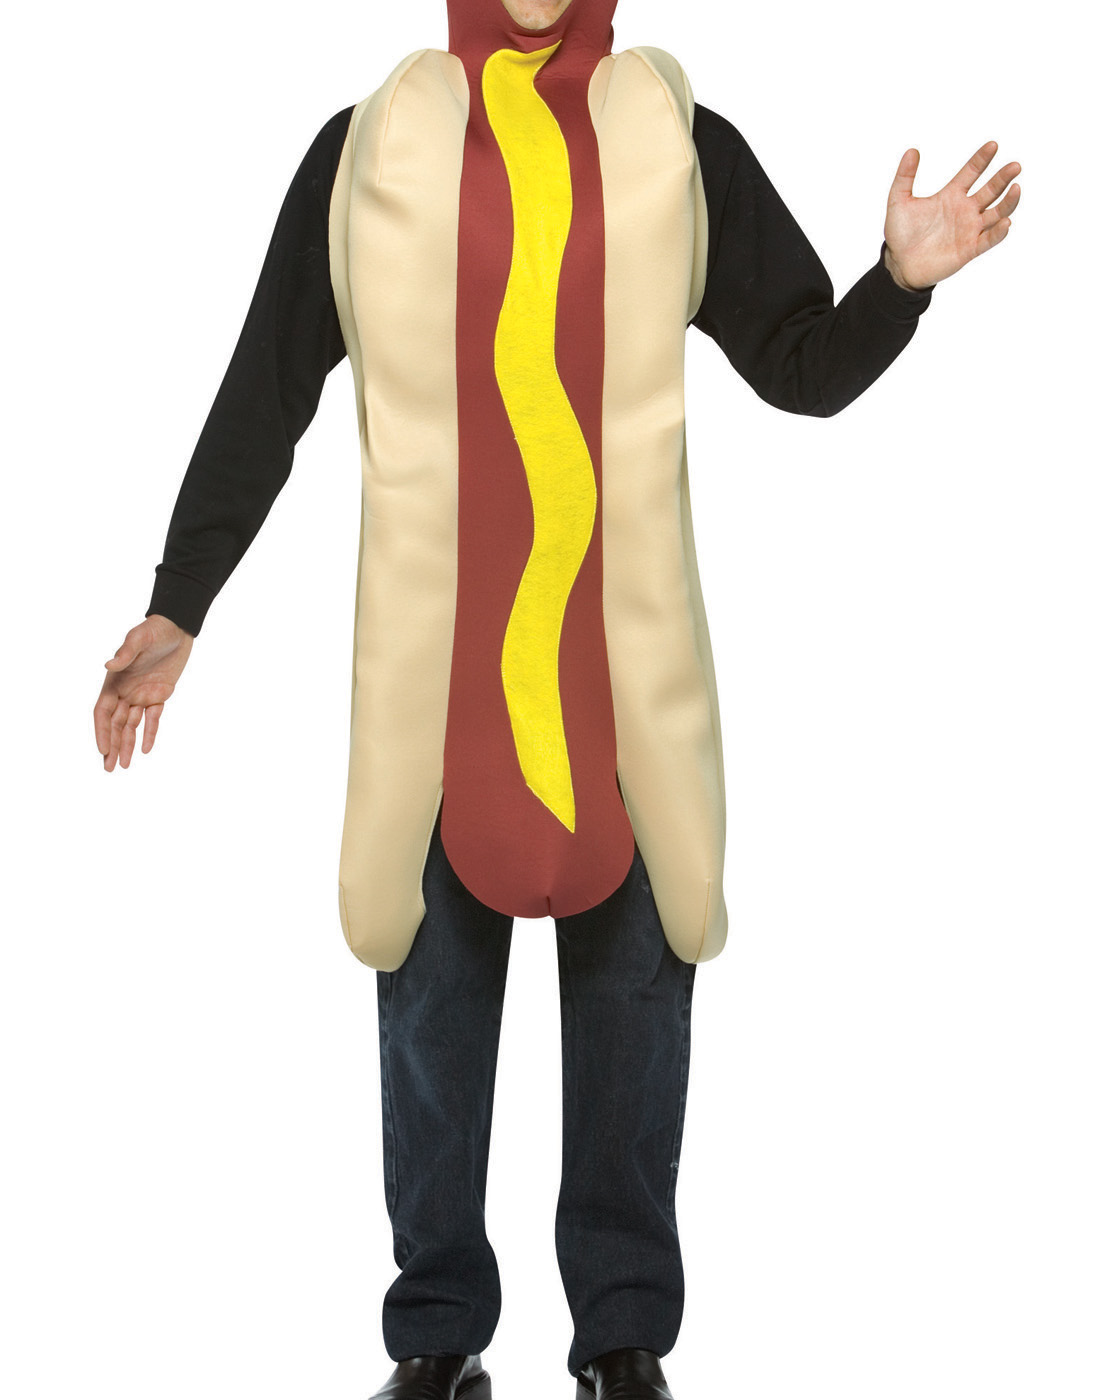 hot dog adult halloween costume one size walmartcom